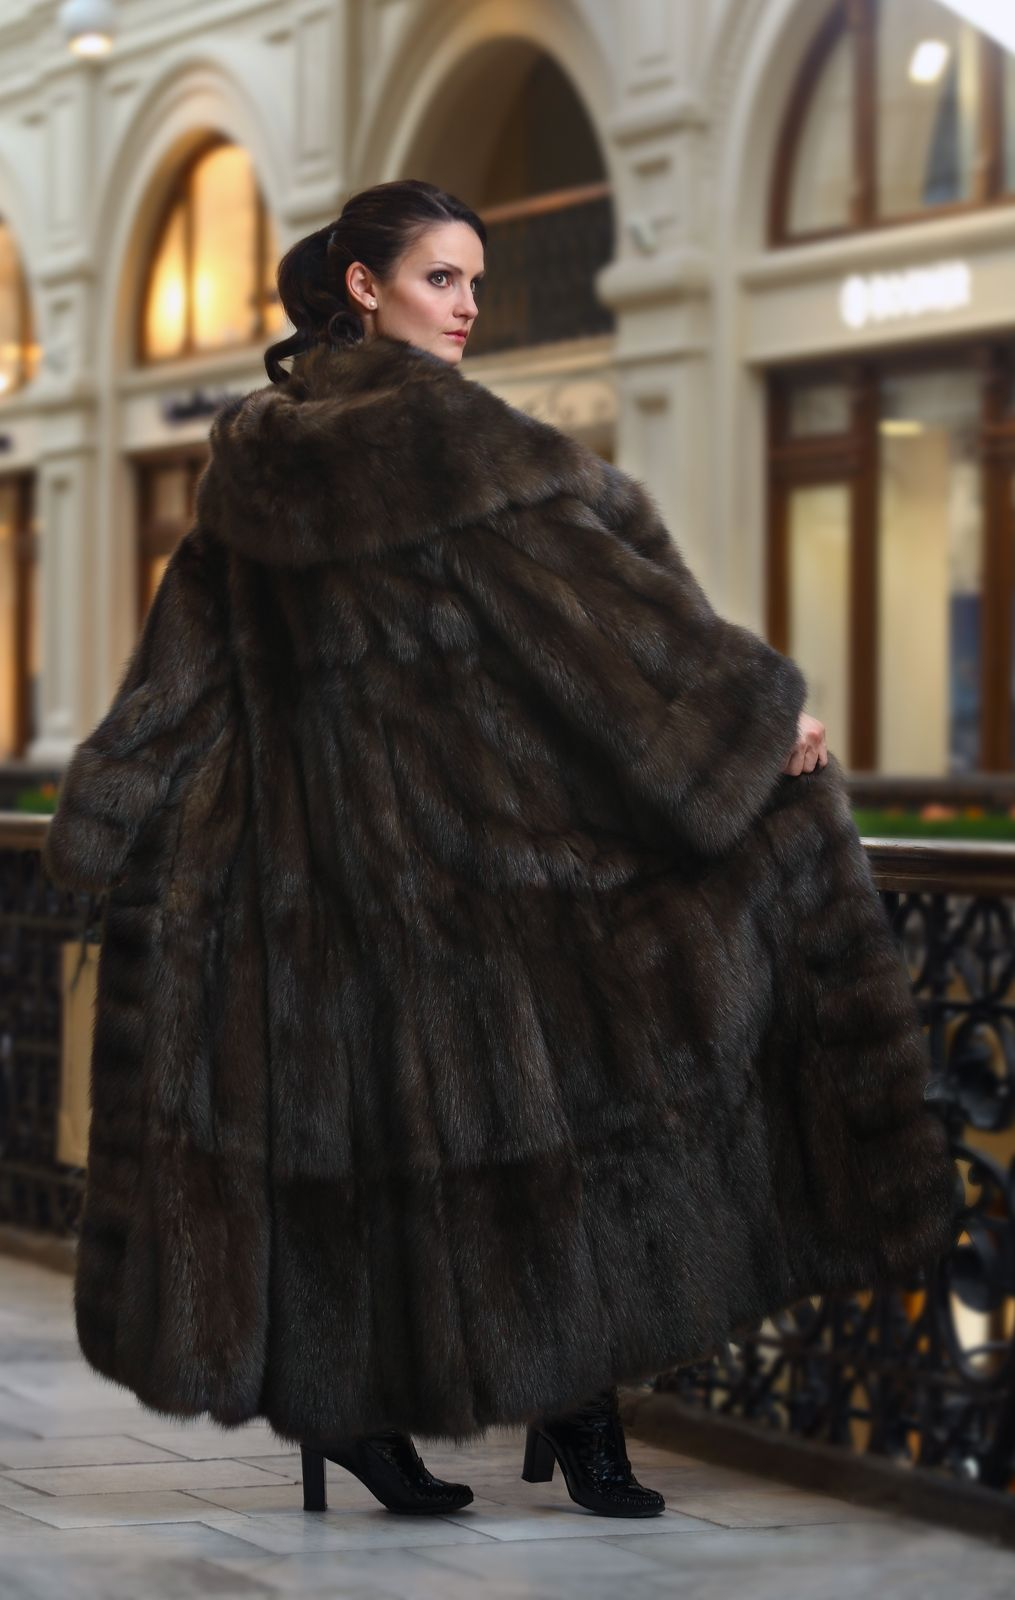 Long, Dark Sable Fur Coat | How I would keep warm | Pinterest ... for Sable Fur Cape  557yll